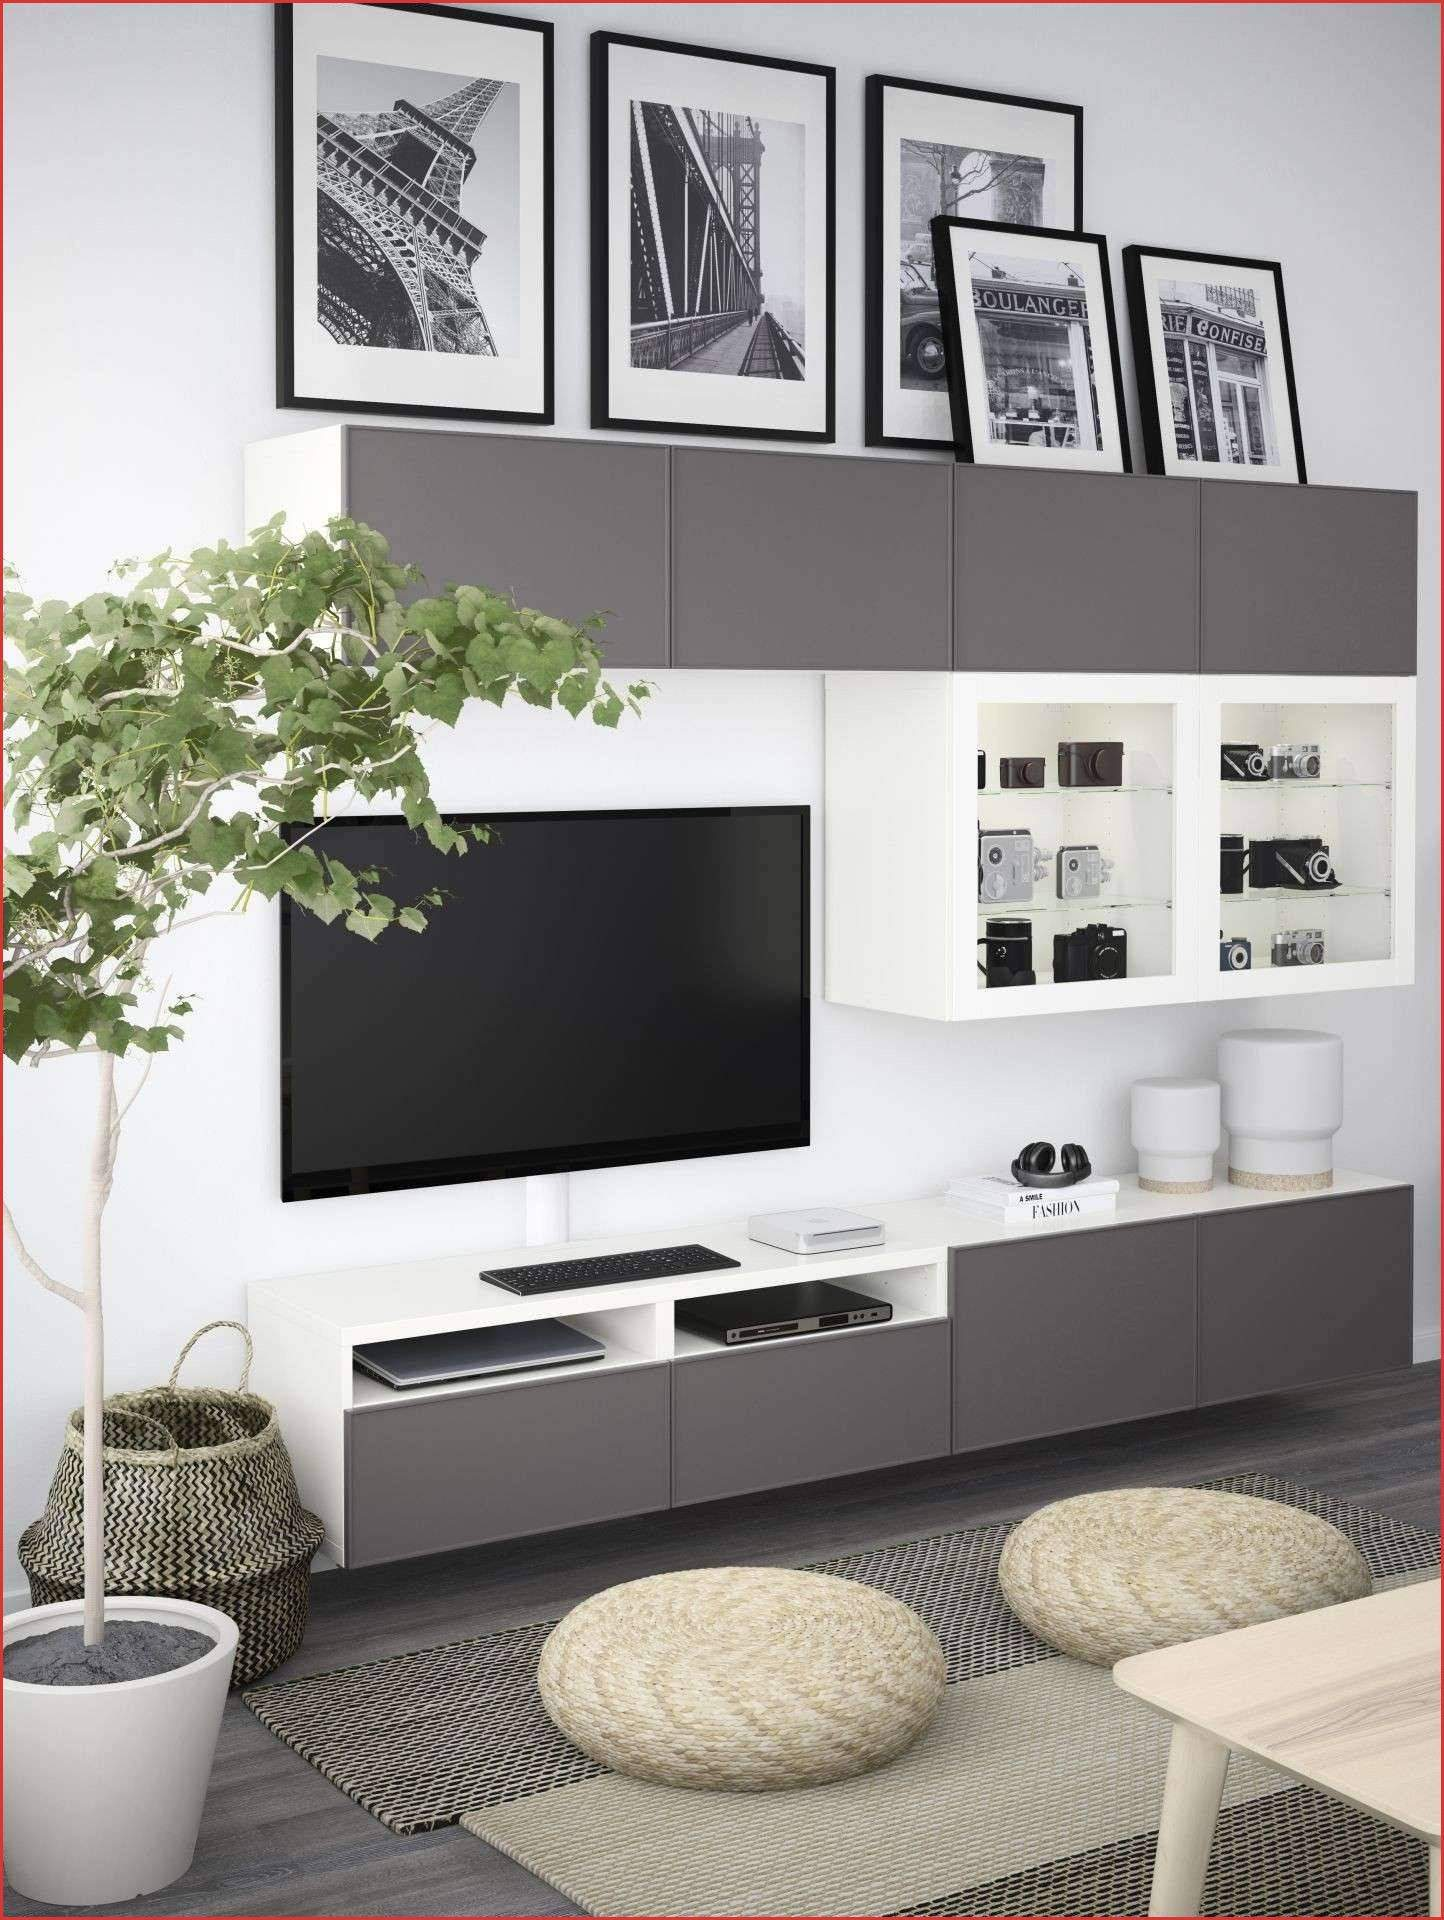 small living room ideas with tv lovely new wohnzimmer neu design ideas of small living room ideas with tv